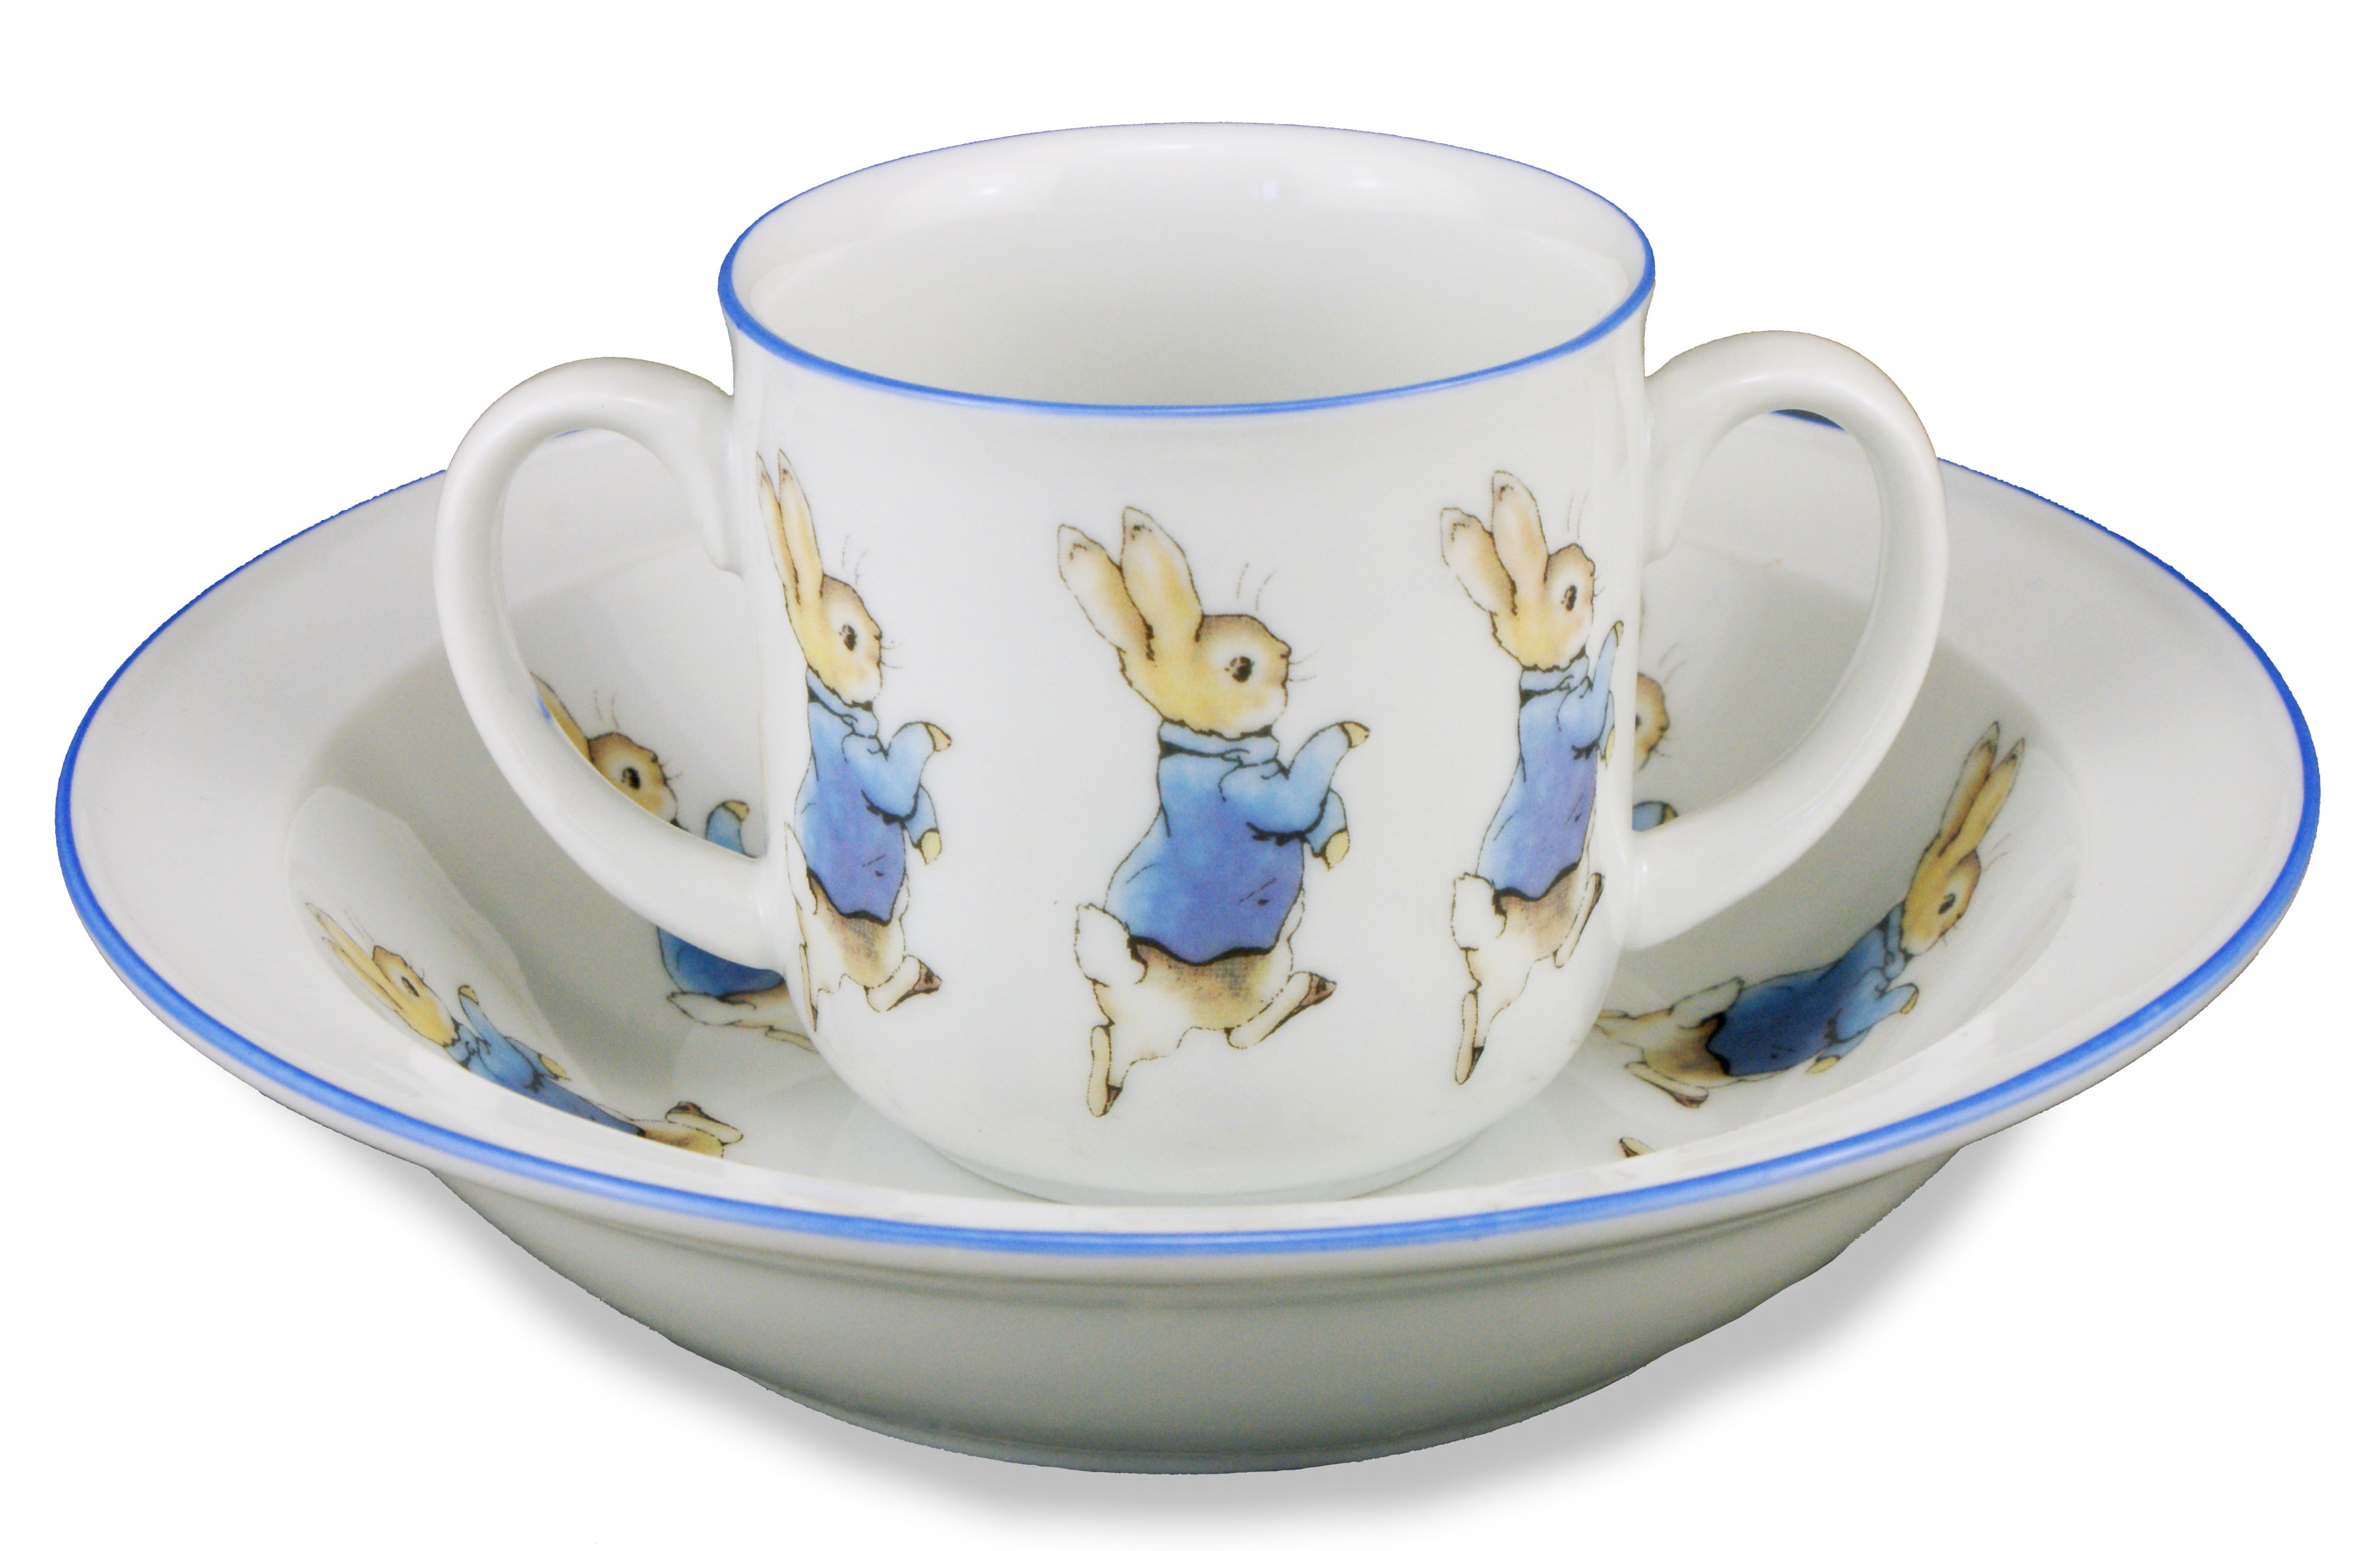 peter rabbit 2 teile porzellan geschirrset set 2 griff becher sch ssel ebay. Black Bedroom Furniture Sets. Home Design Ideas